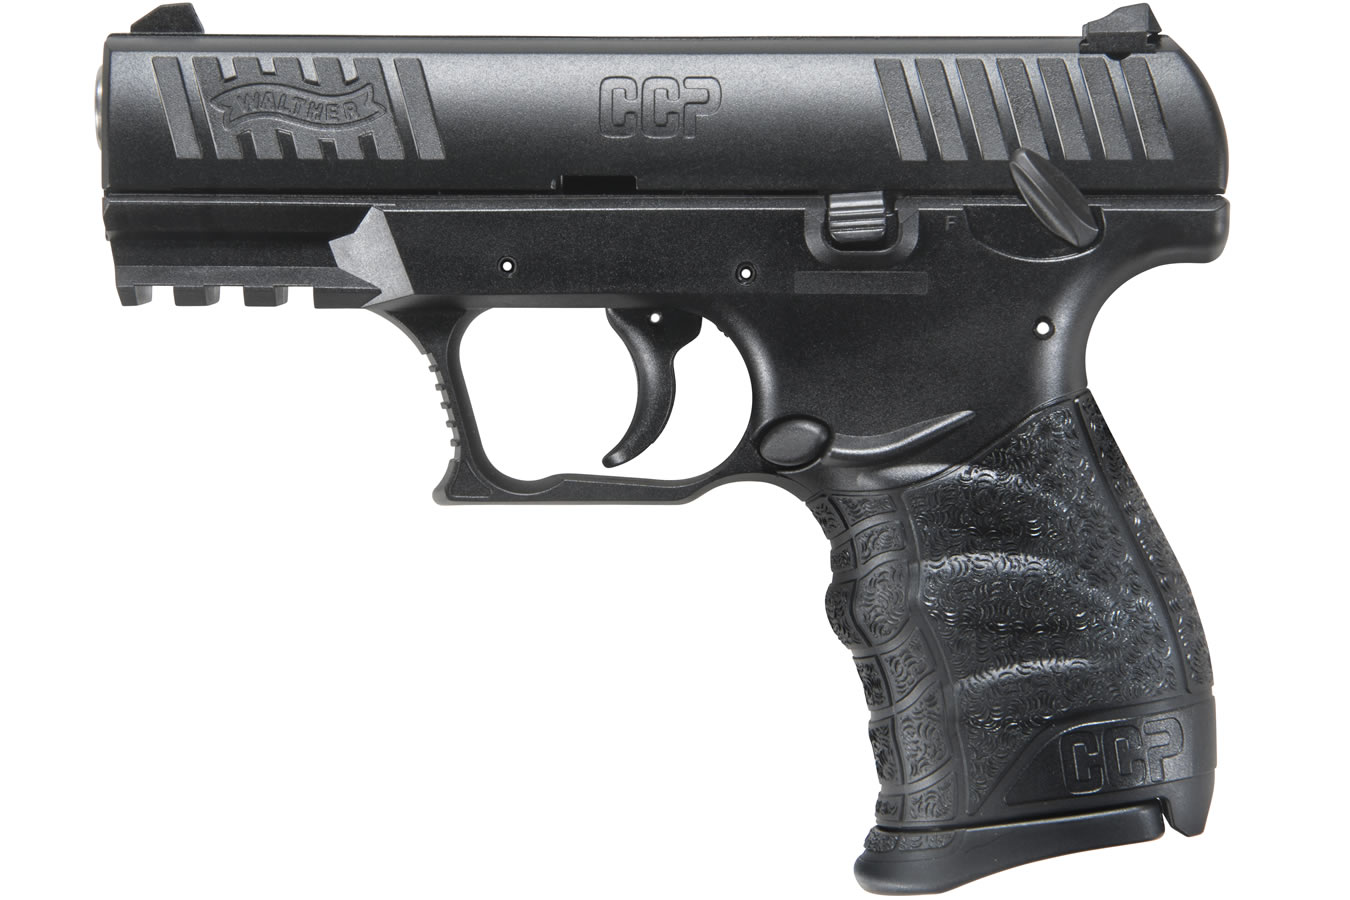 9mm walther ccp carry concealed pistol compact taurus g2 millennium pt sub customer